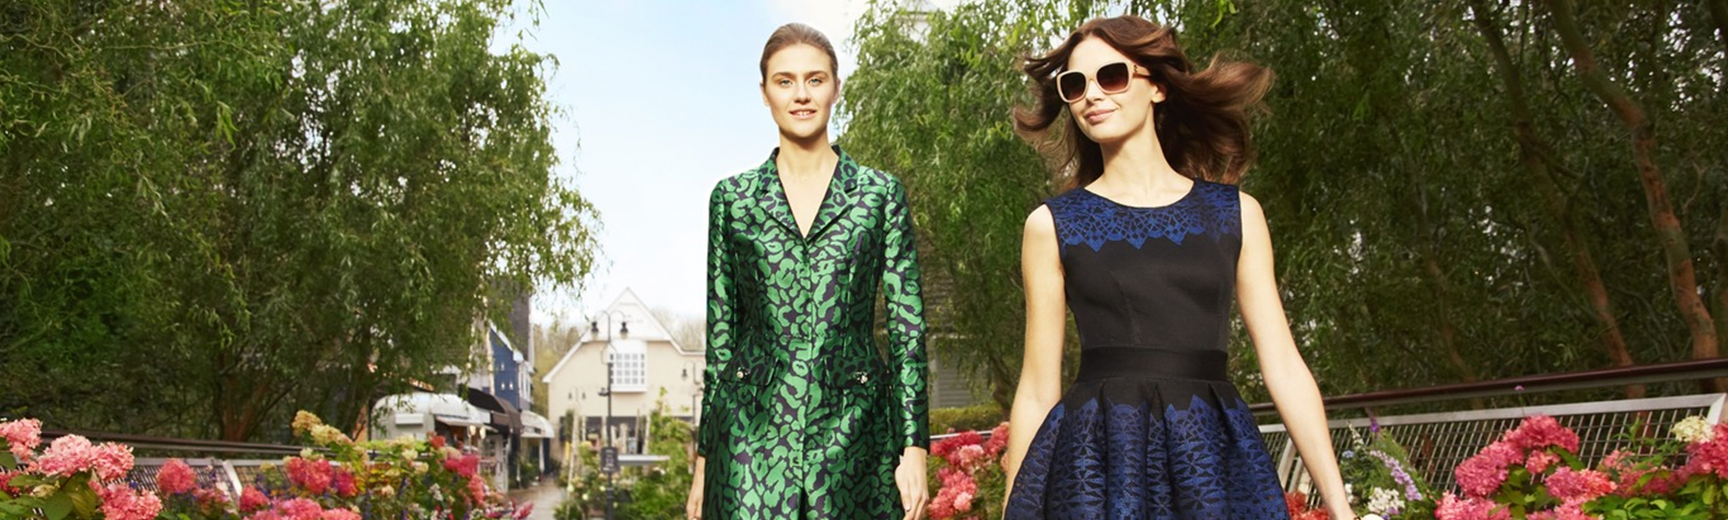 win a vip shopping experience at bicester villageWin a VIP Shopping Experience at Bicester Village